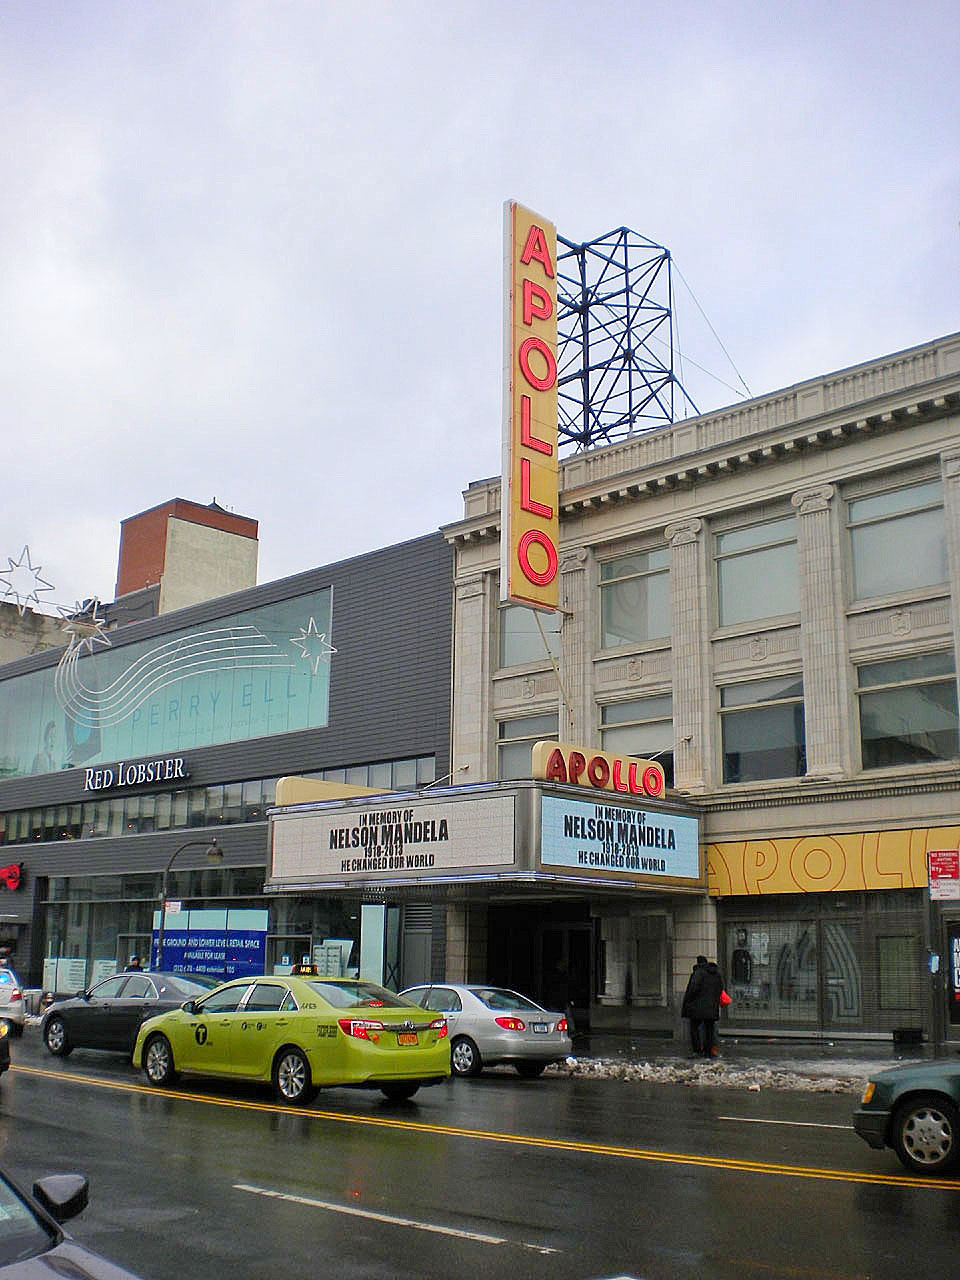 new-york-apollo-theatre-harlem